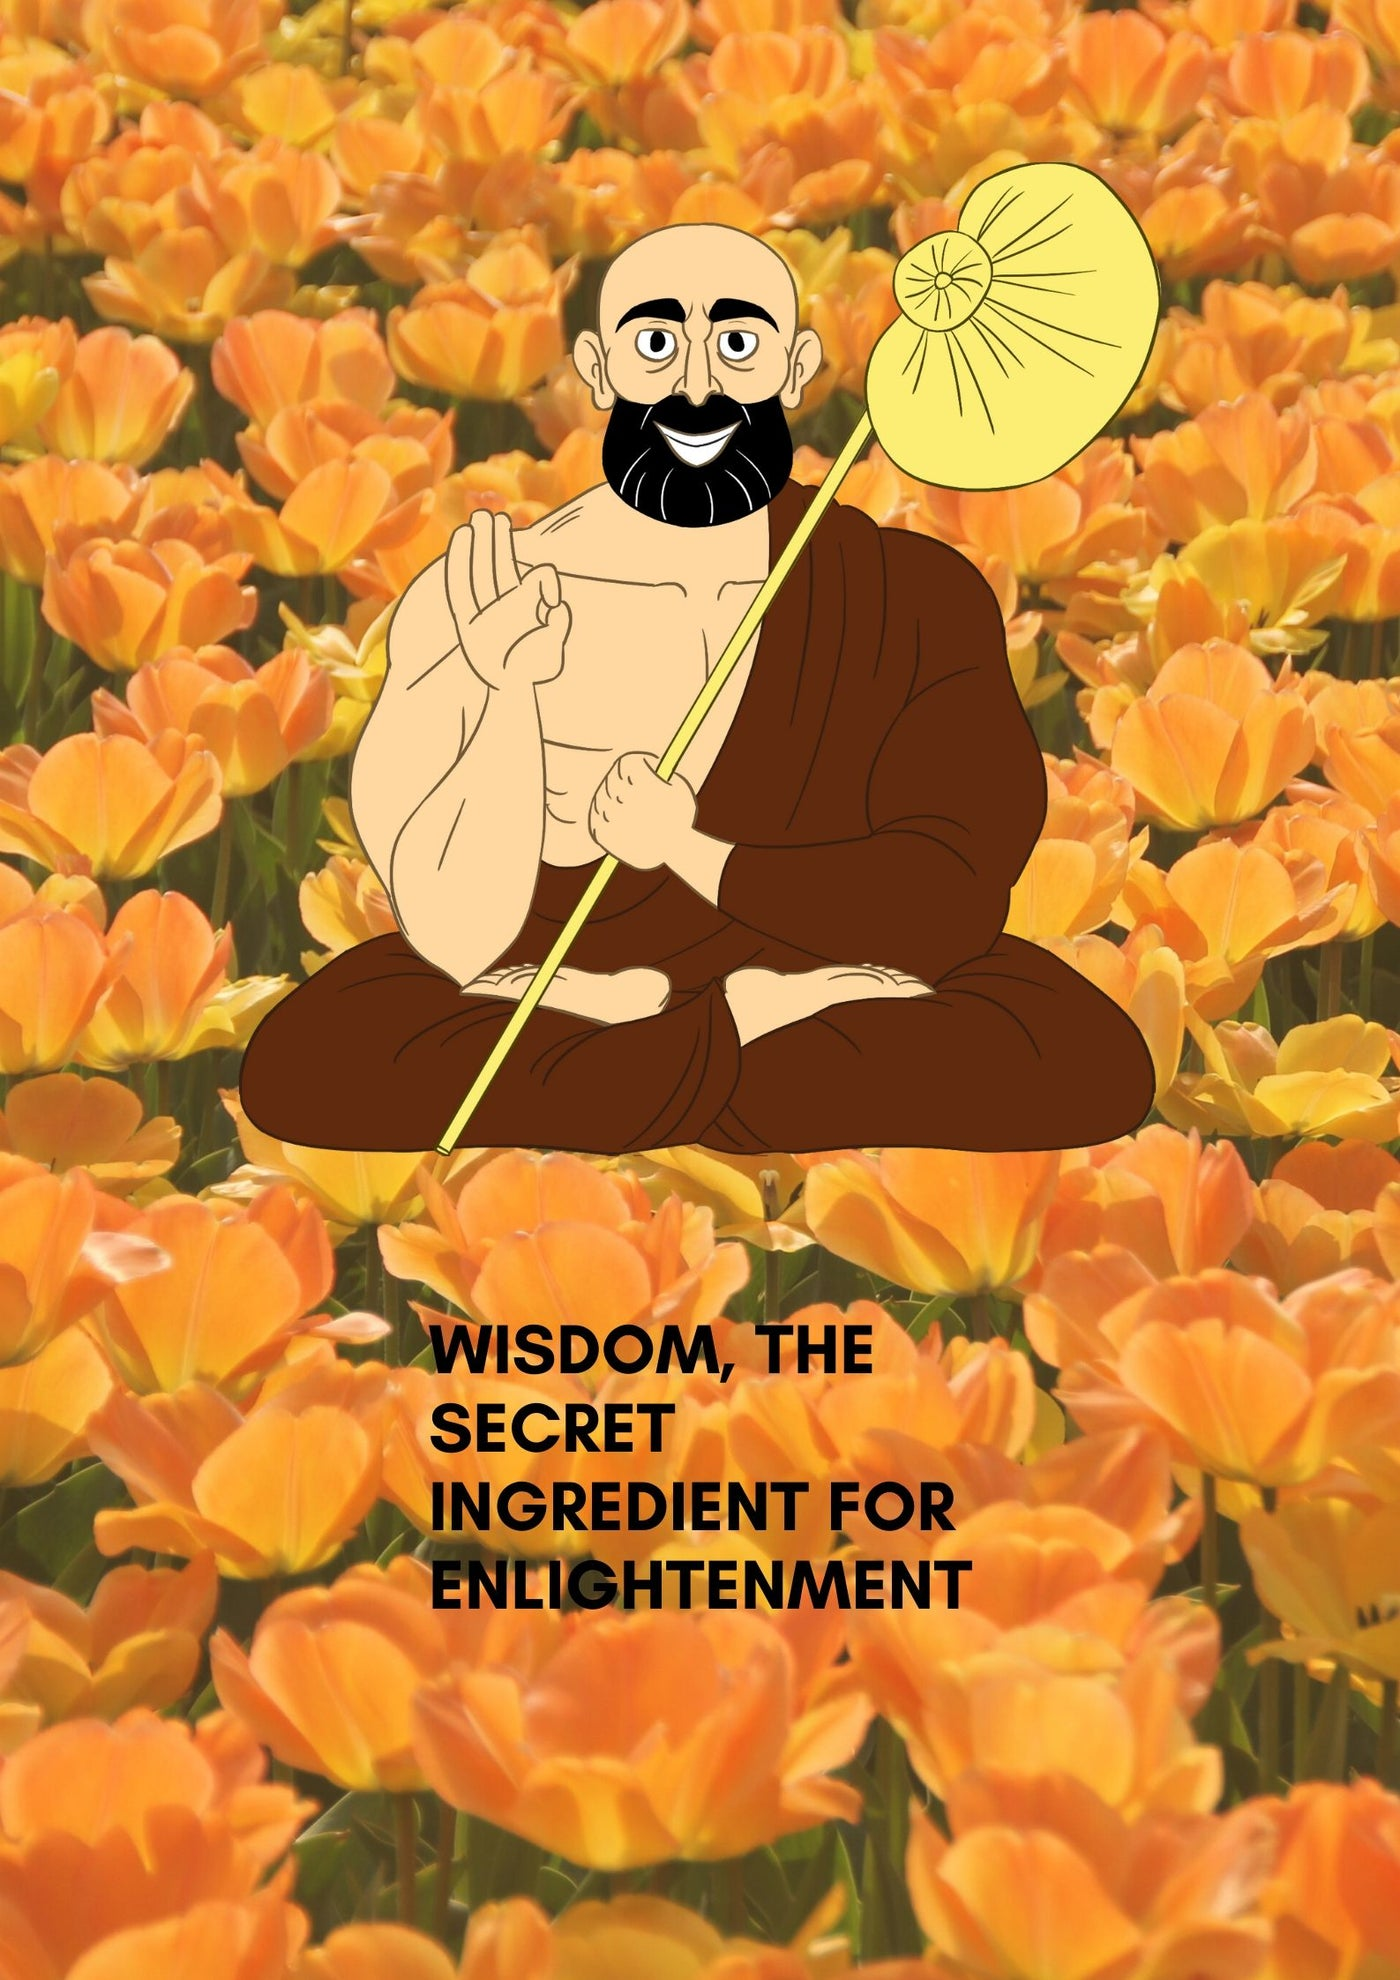 Wisdom, the secret ingredient for enlightenment